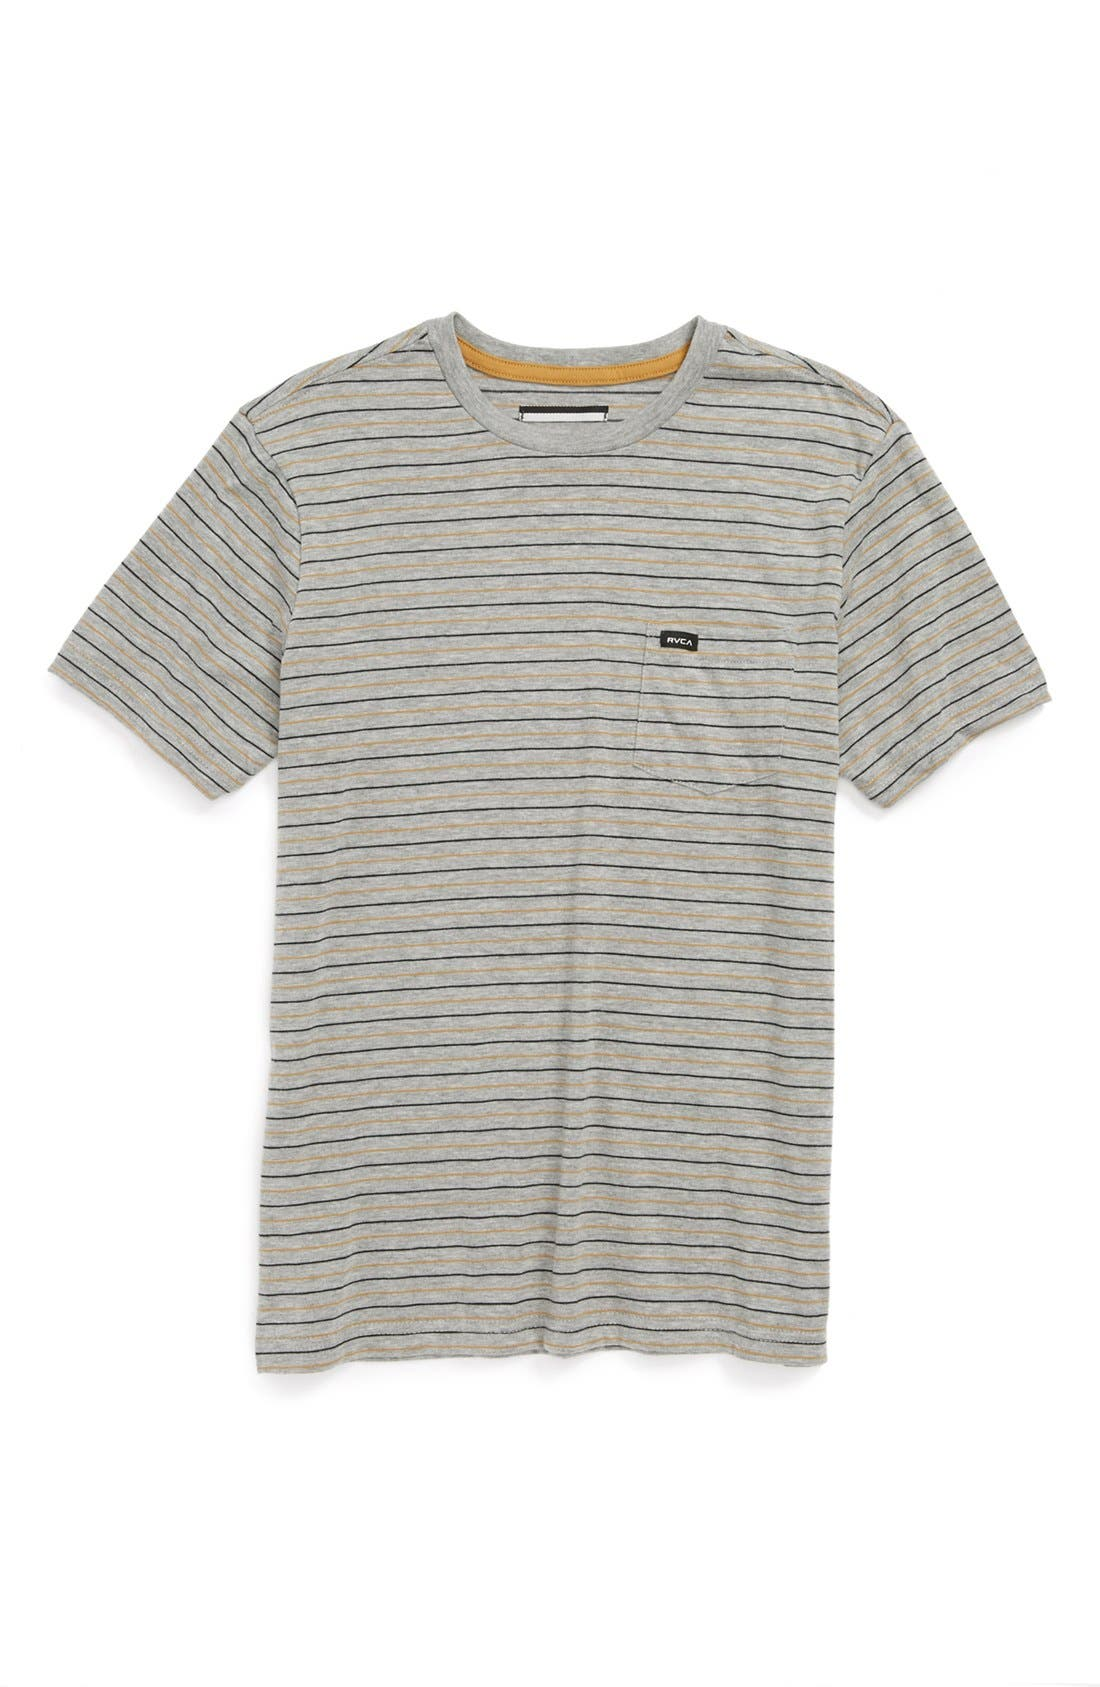 Alternate Image 1 Selected - RVCA 'Dilated' T-Shirt (Big Boys)